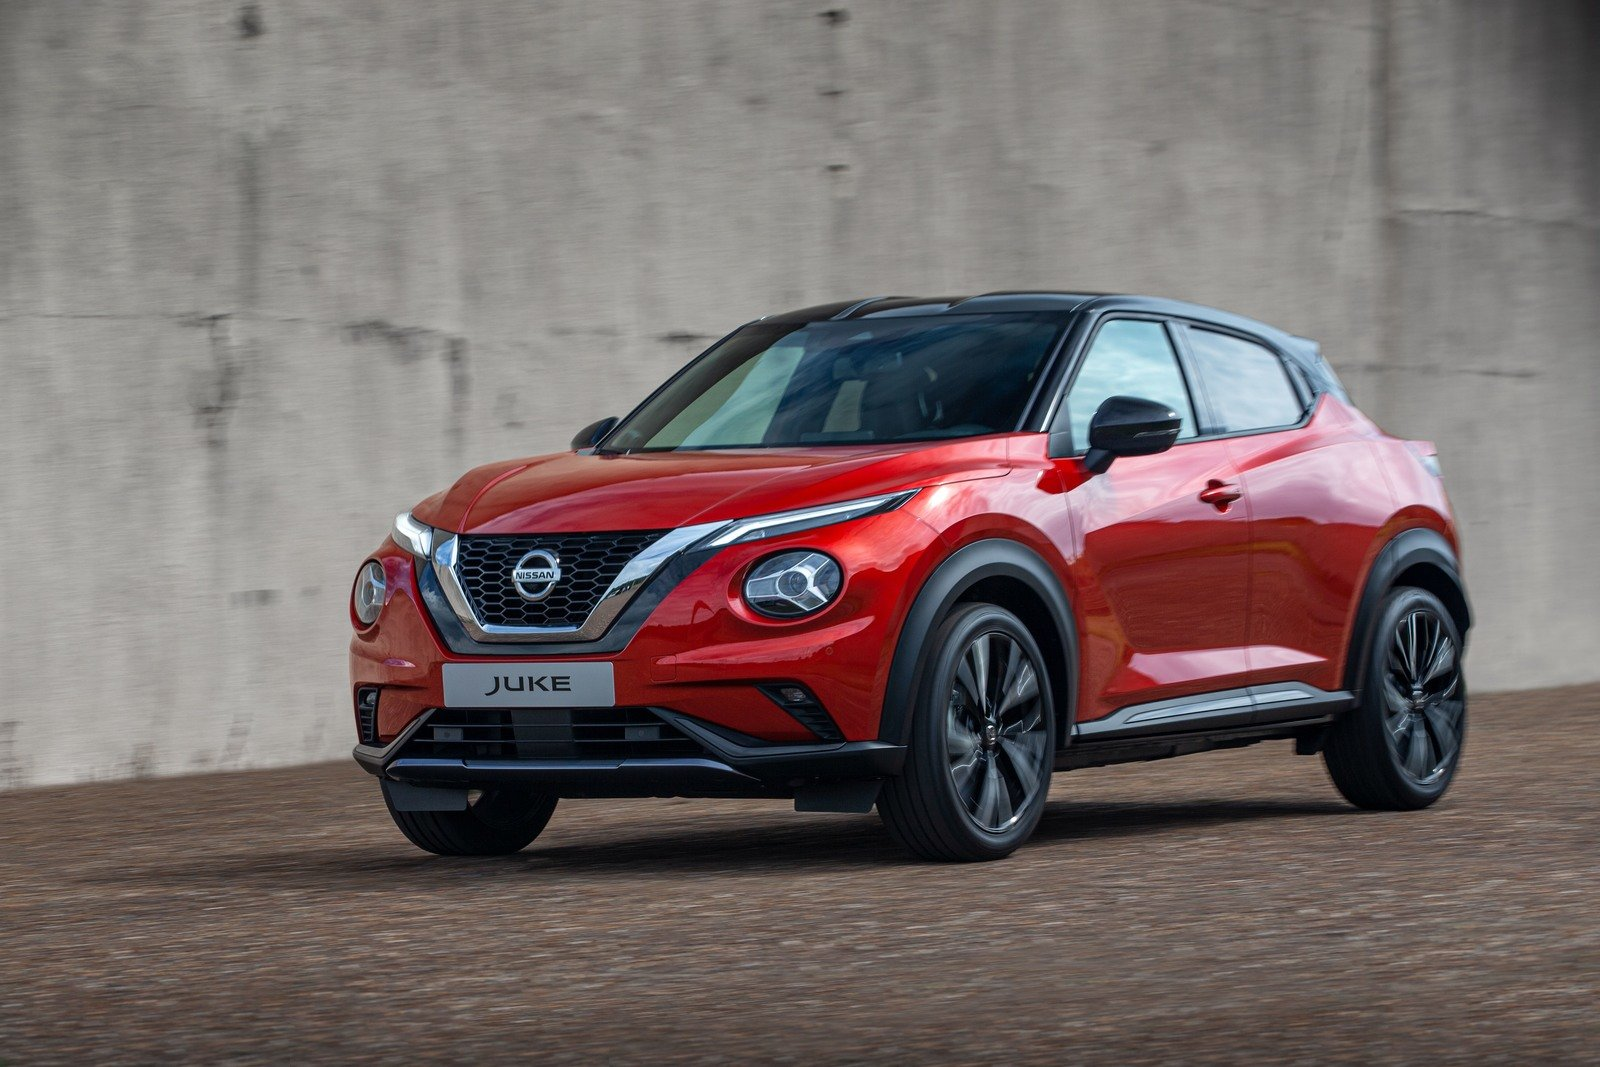 2019 nissan juke arrives with updated design  new platform and roomier interior